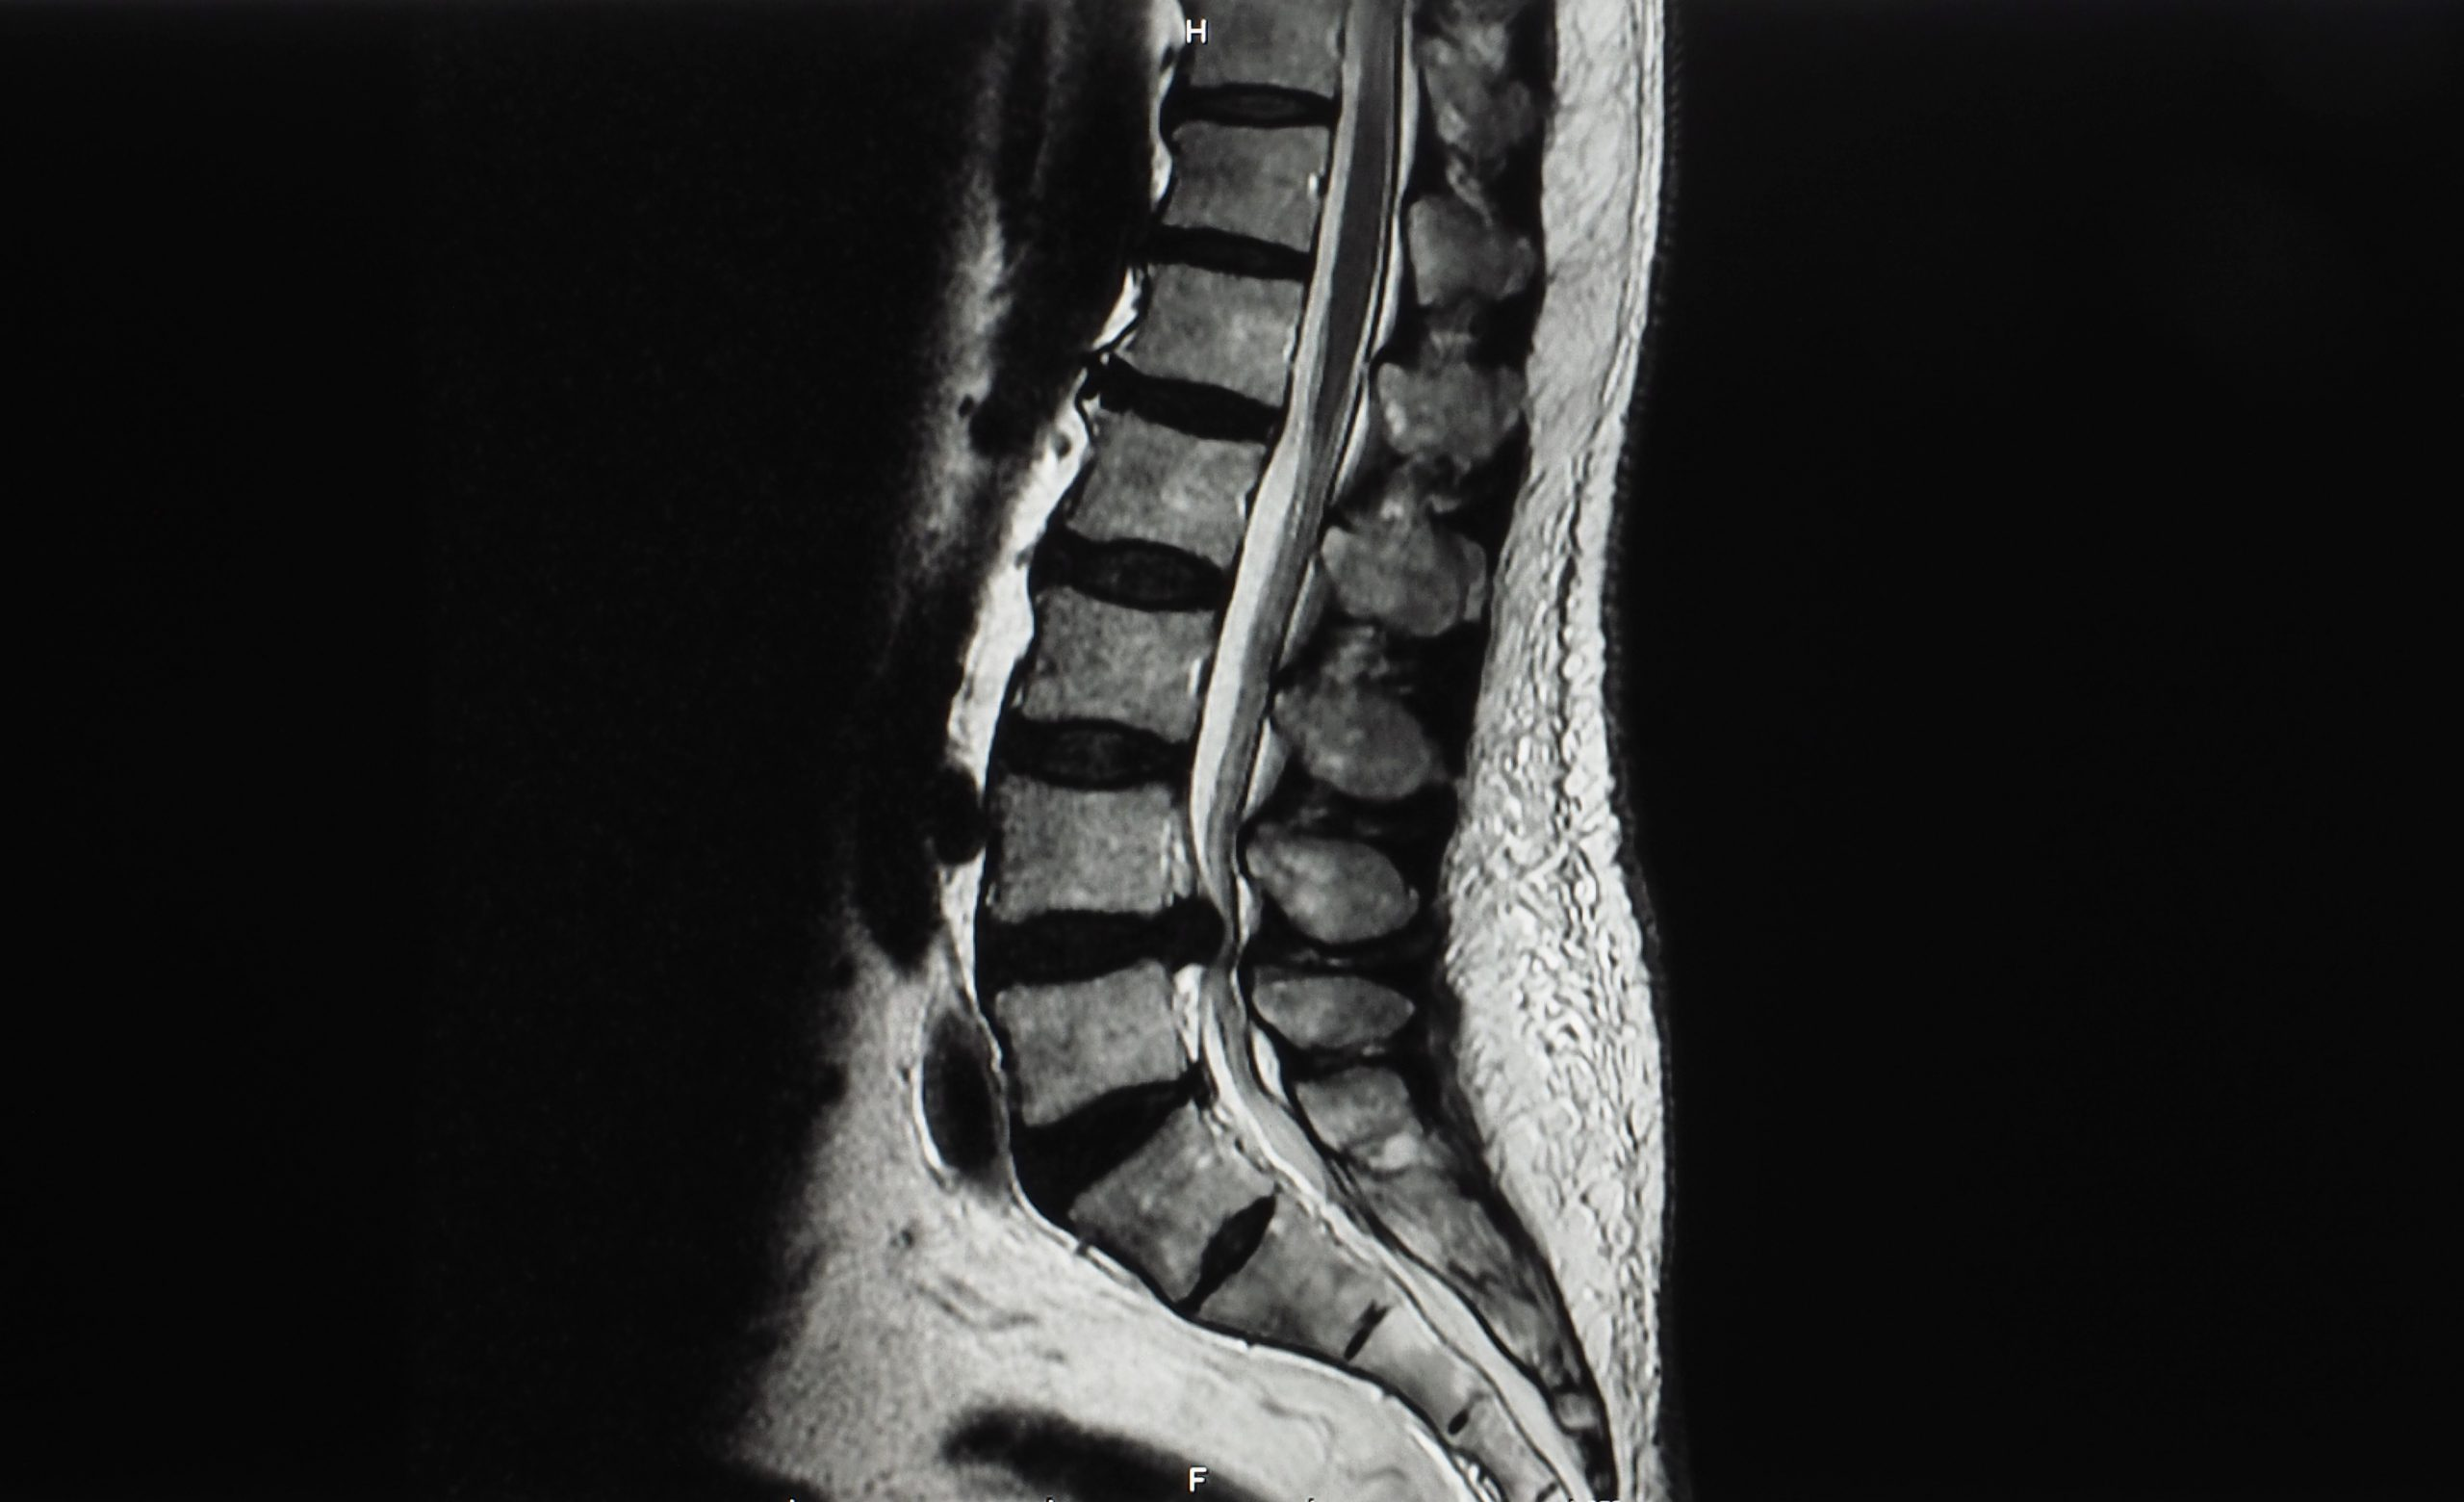 Cauda Equina Syndrome. When a Herniated Disc Becomes a Medical Emergency. Also a New Home Test Kit for Prostate Cancer.